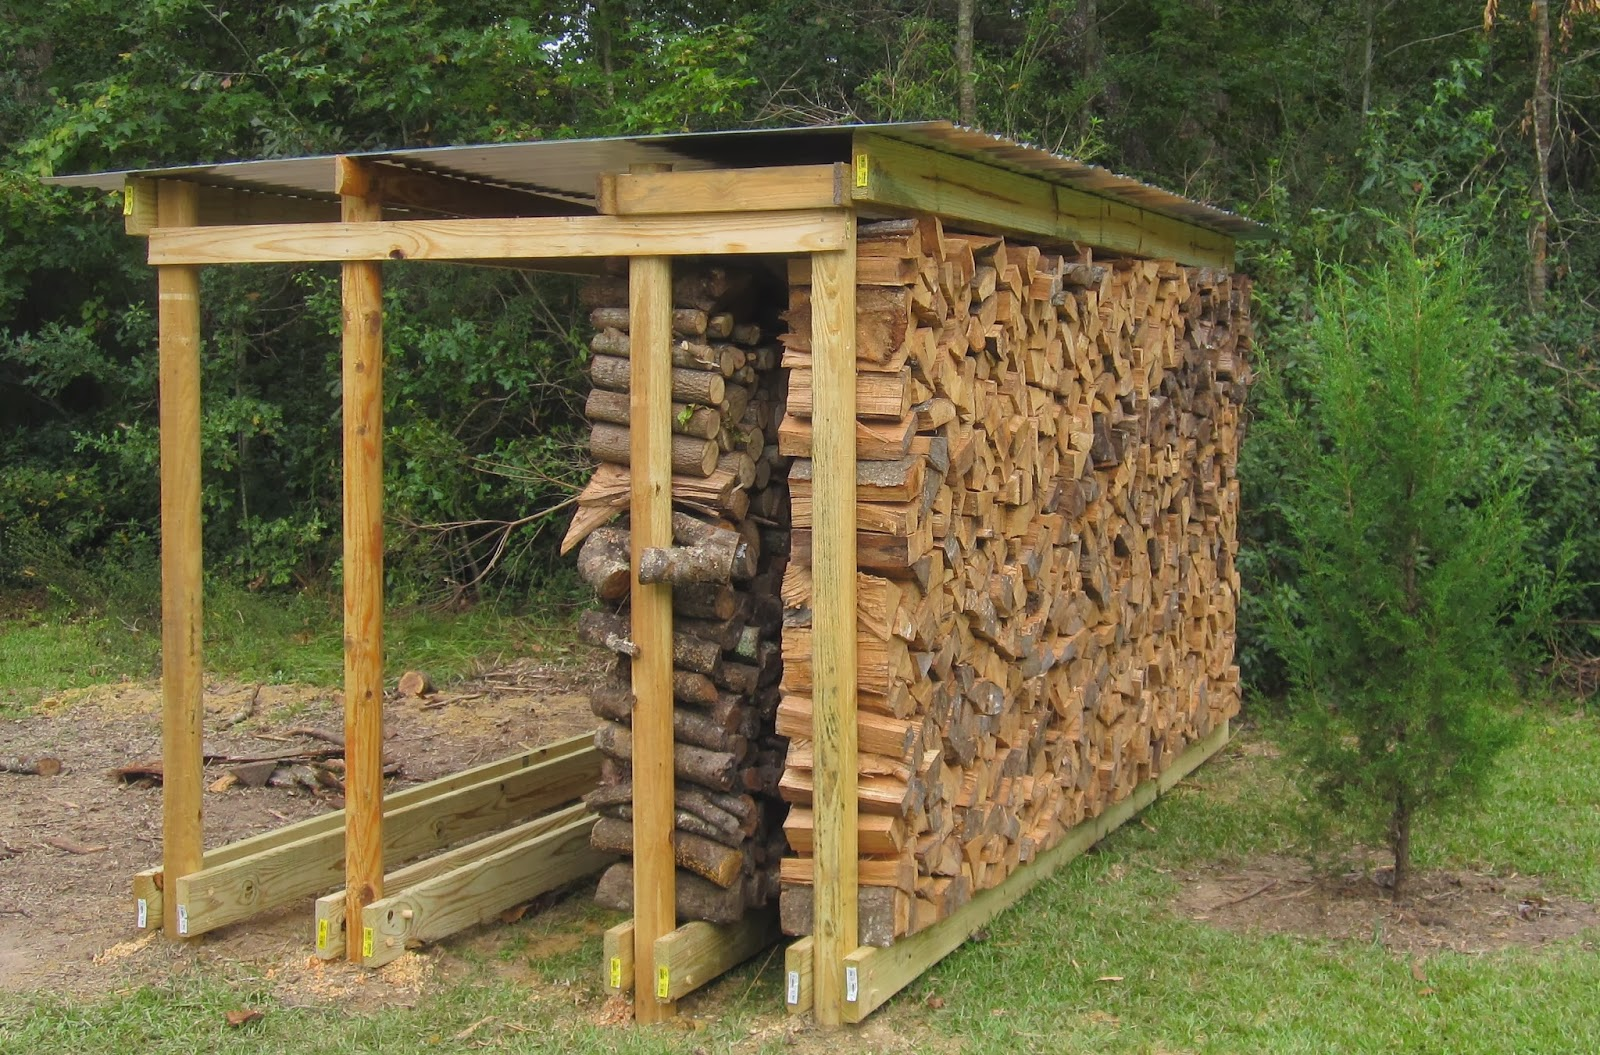 Firewood Rack Plans Plans post and beam barn plans | $*# MEN With Shed ...